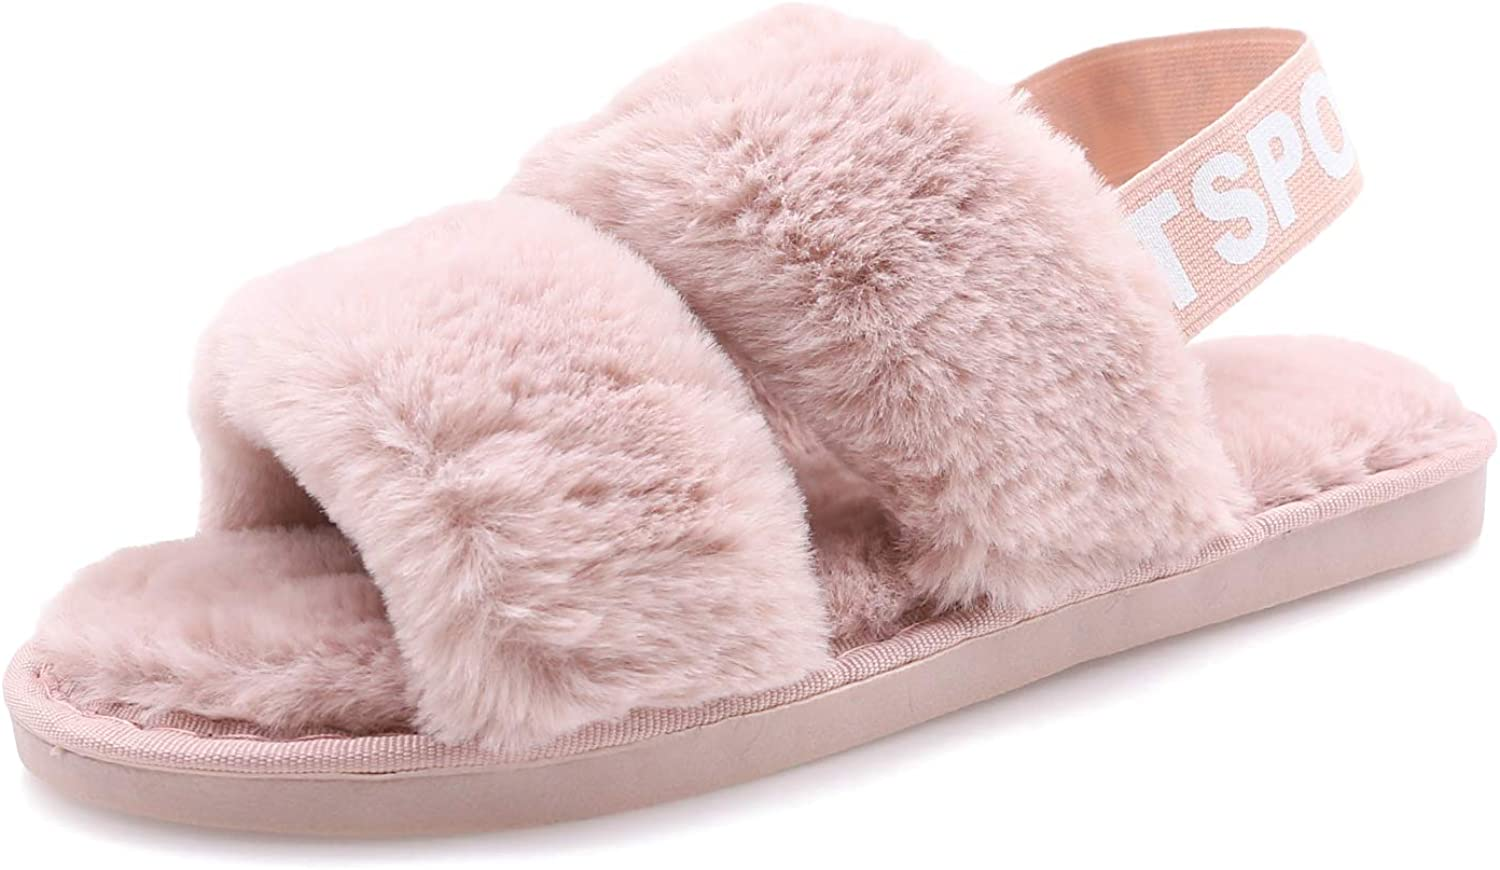 Women's House Fuzzy Slipper Fluffy Sandals Slides Leopard Print Soft Warm Comfy Cozy Bedroom Open Toe House Indoor Outdoor Slippers Sandals with Elastic Strap (Light Pink, Numeric_5)